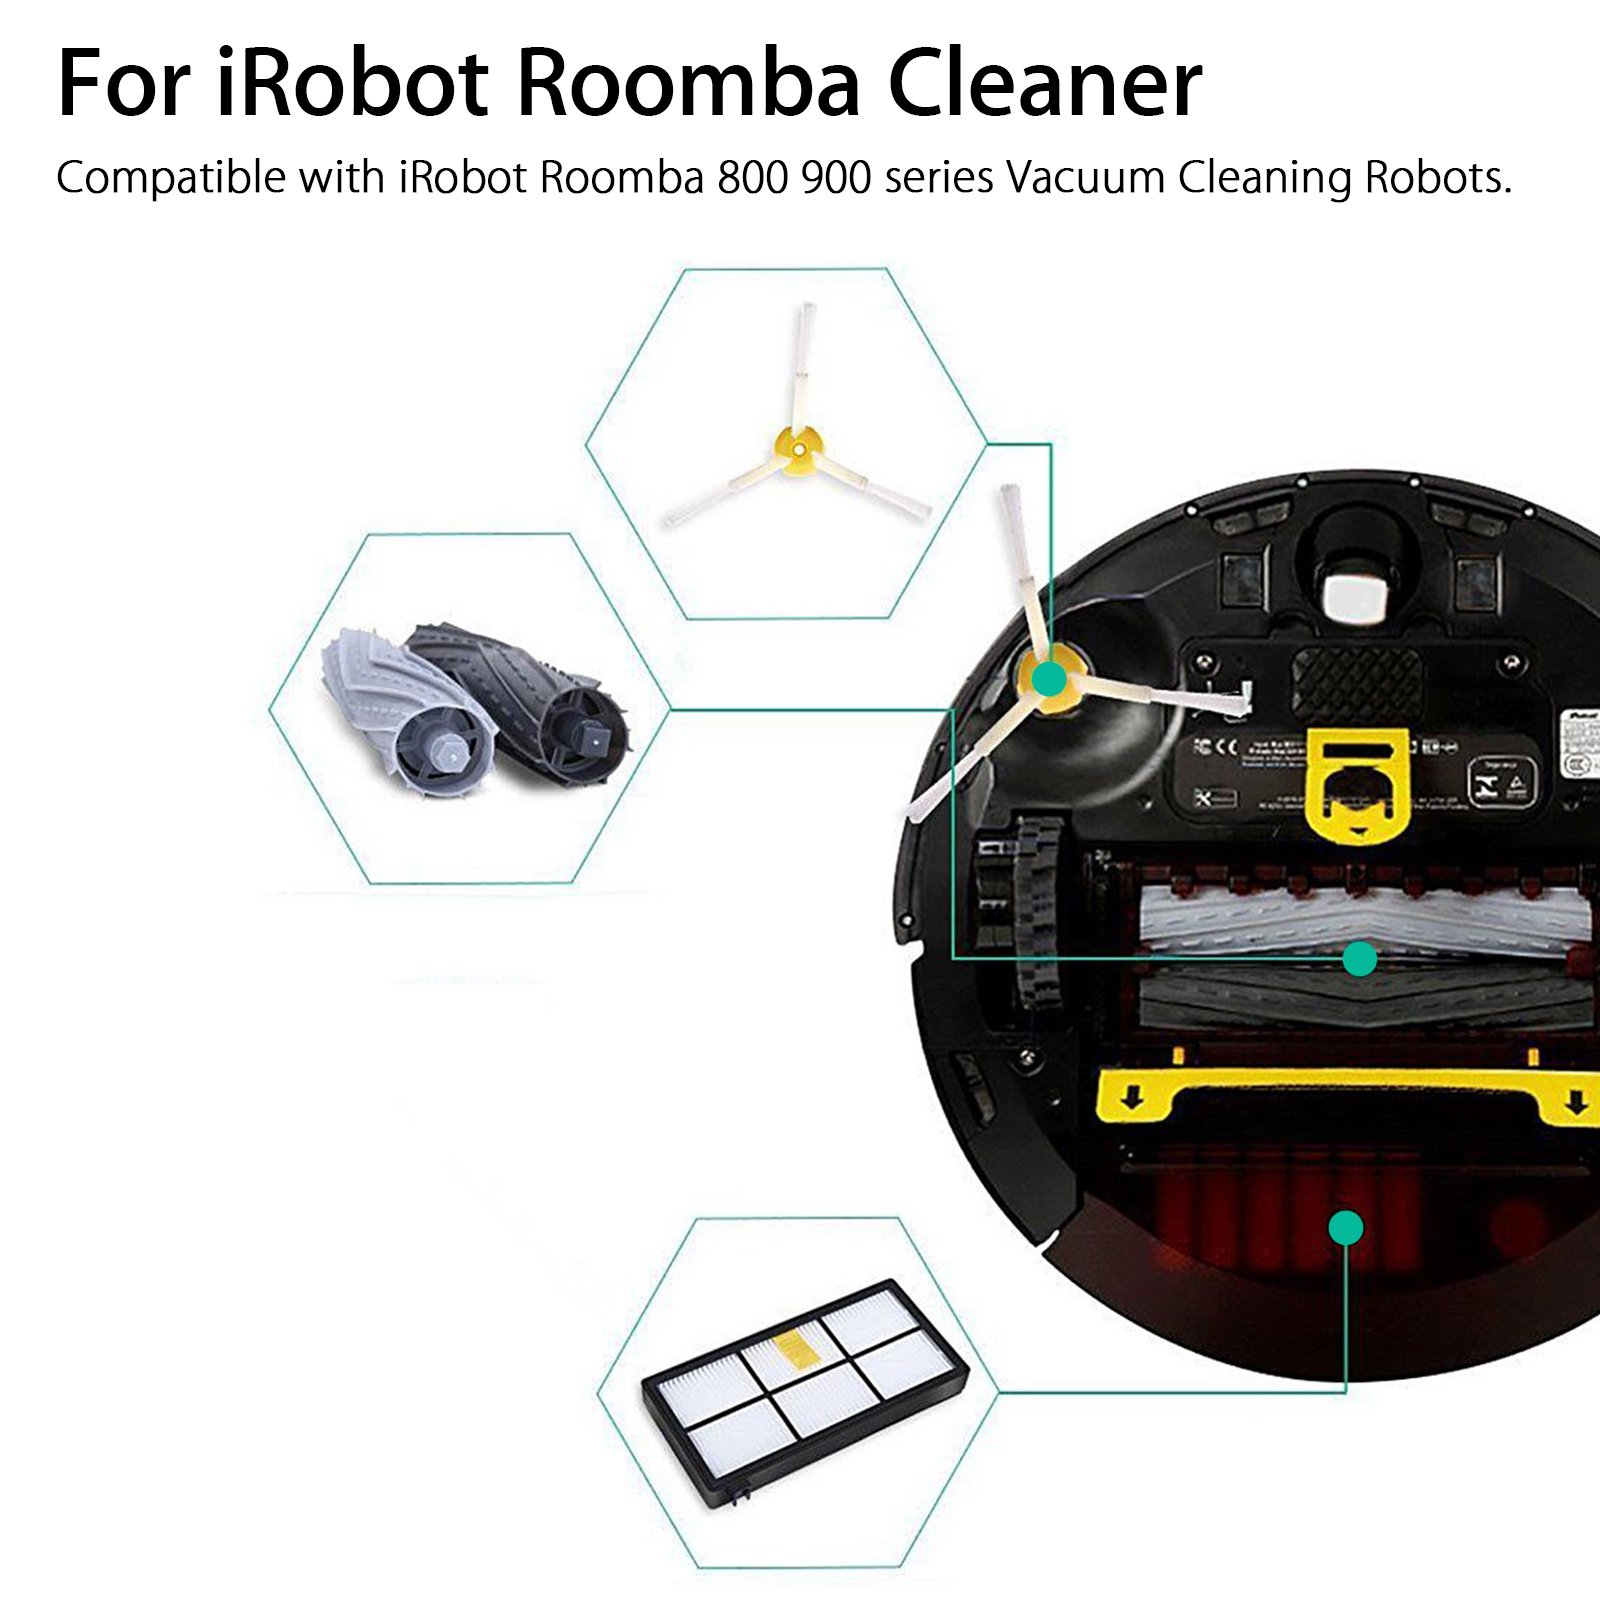 Buy 4 Side Brushes 4 Filters 4 Extractors Hepa Filter kit for Roomba